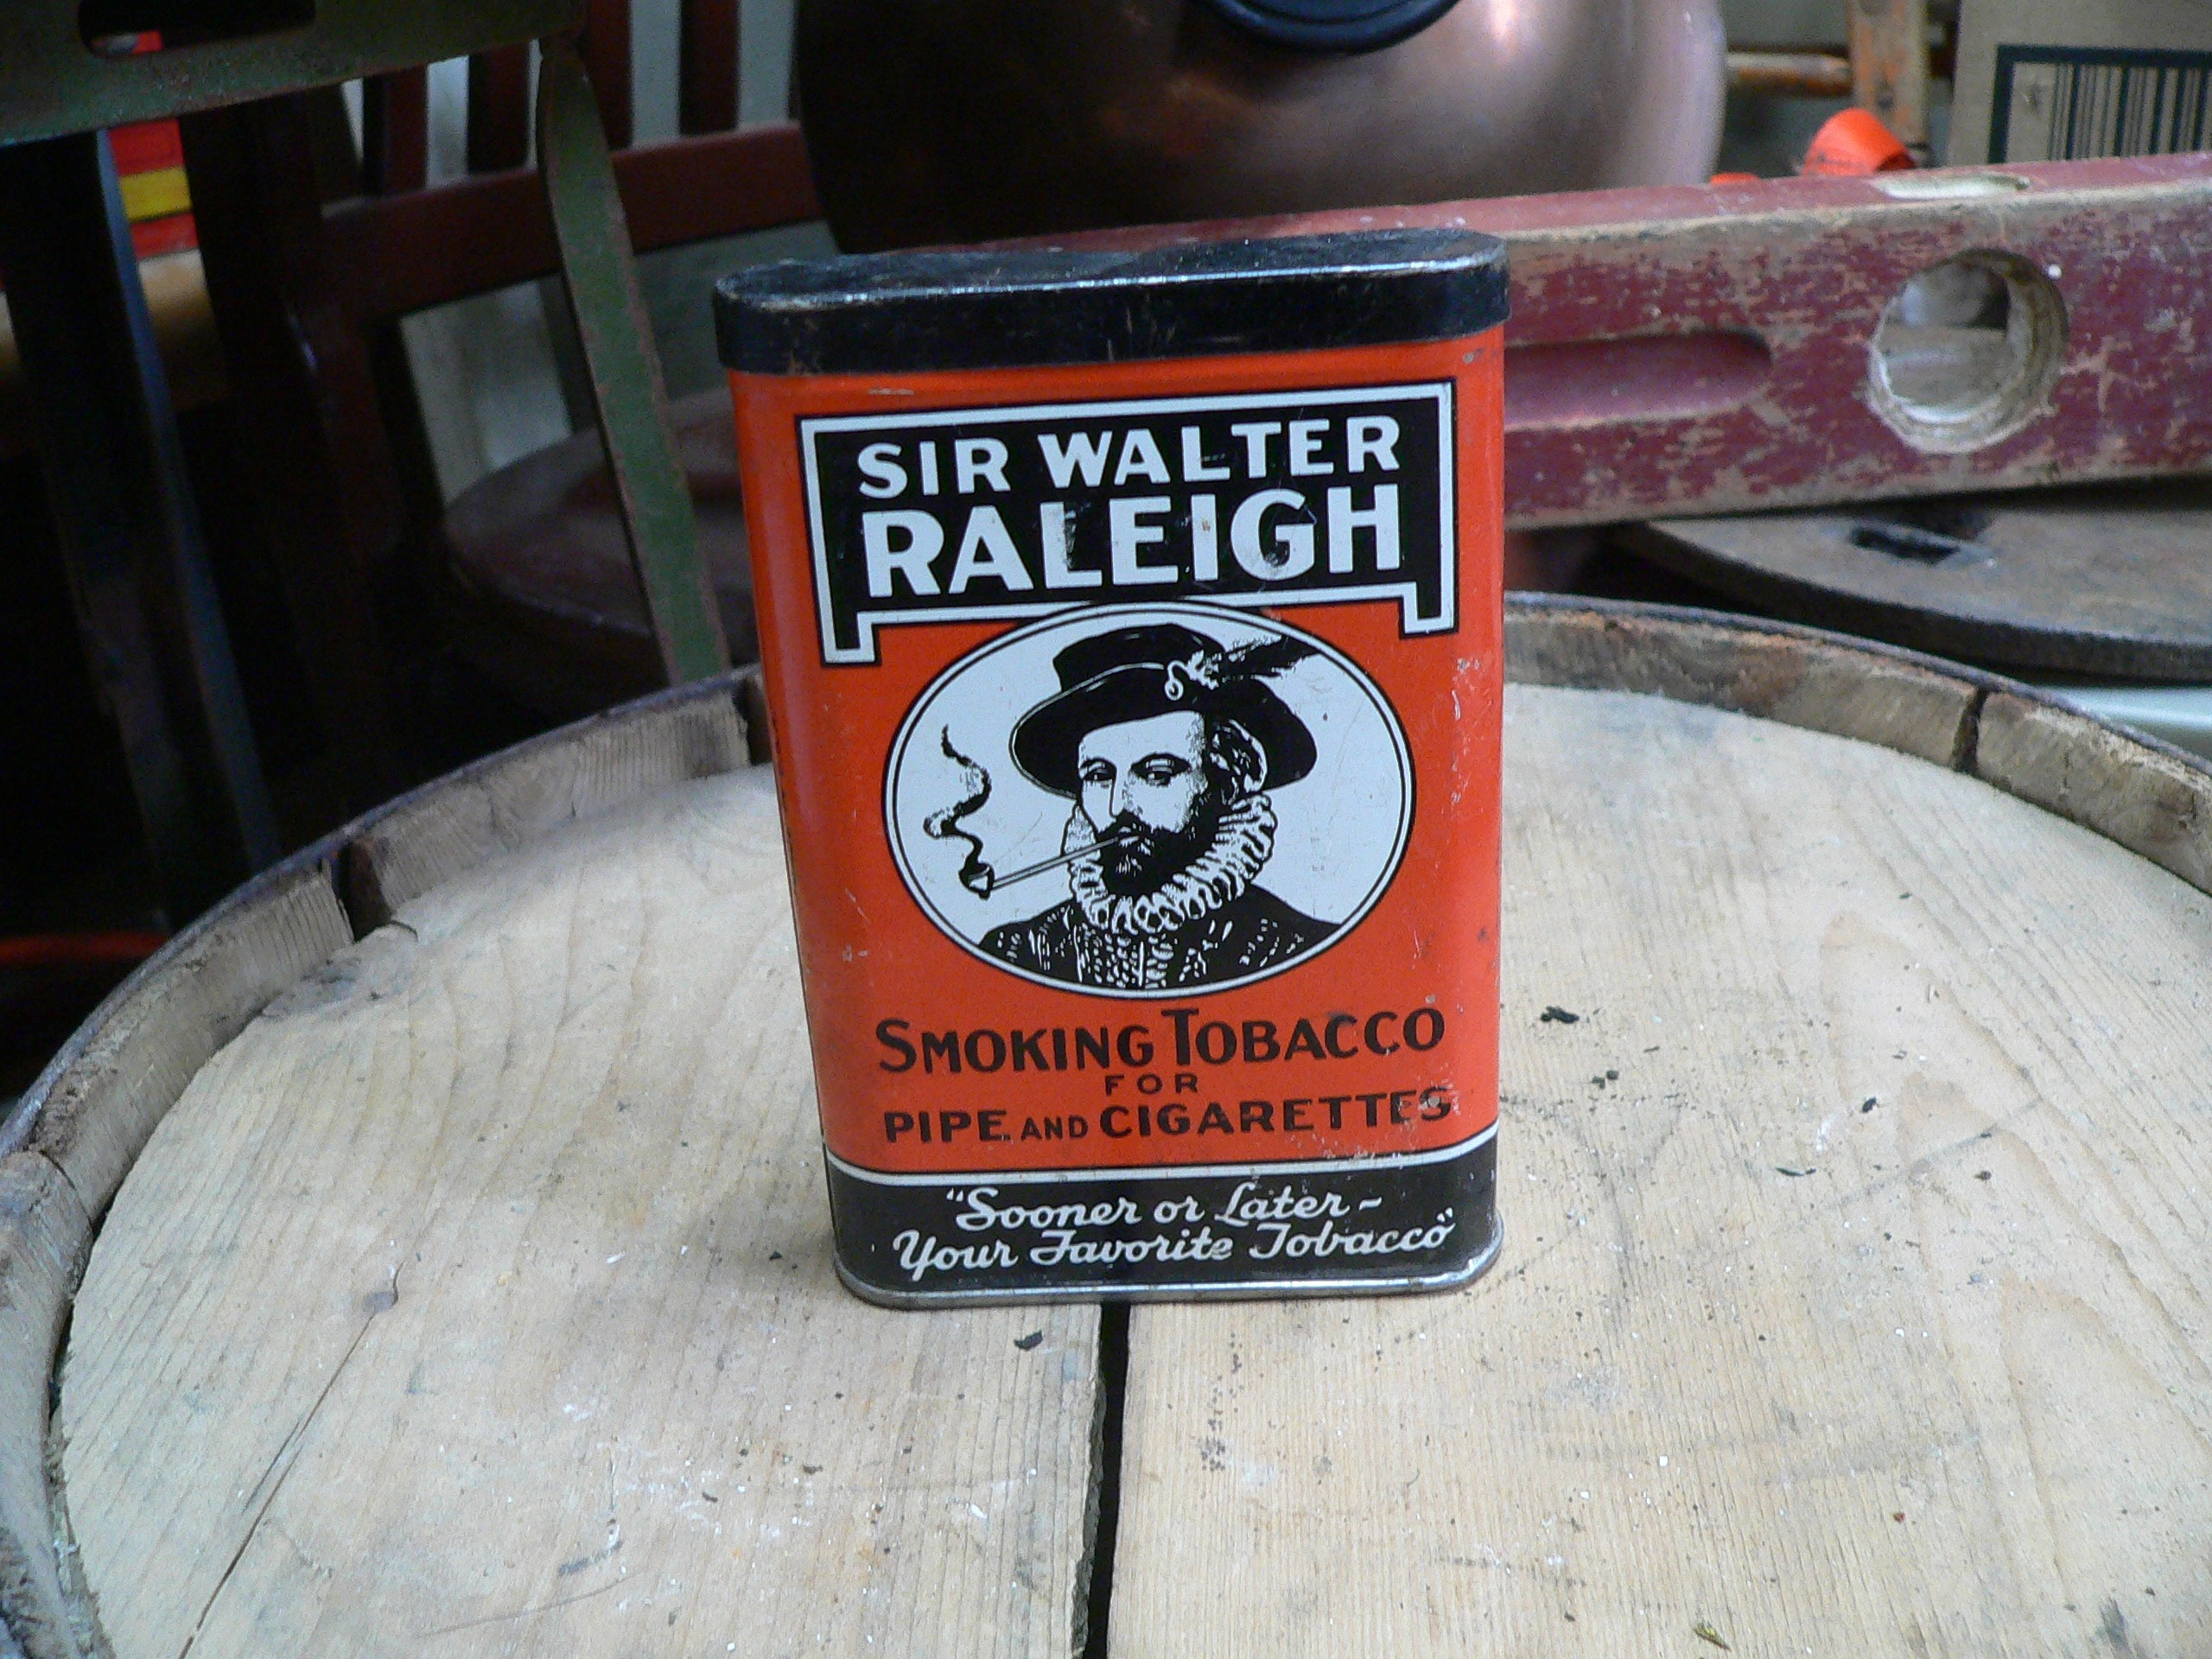 Canne de tabac antique sir walter raleigh # 7311.7